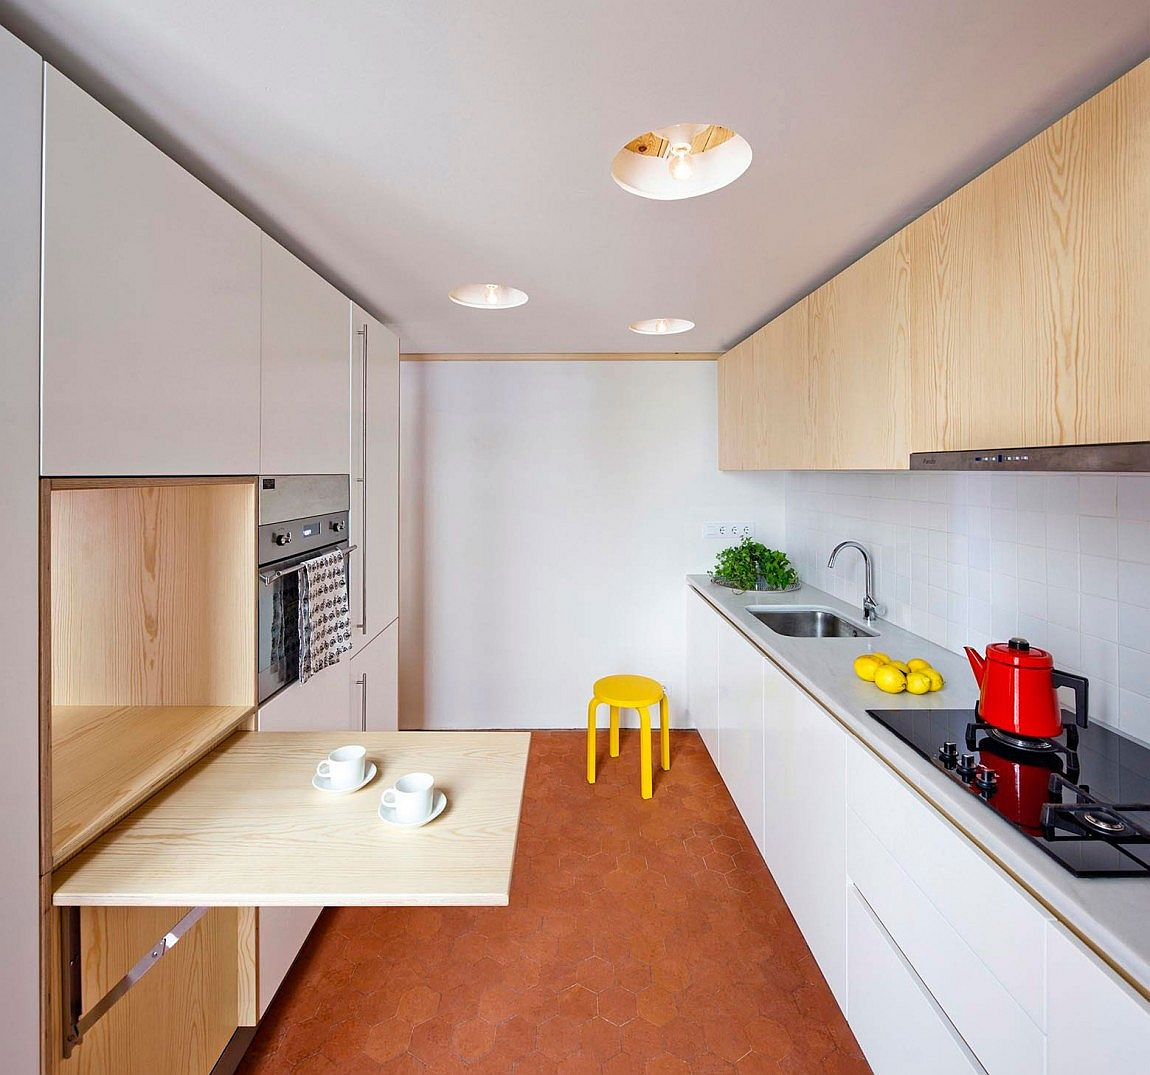 Space savvy kitchen and mezzanine in small barcelona apartment for Smart kitchen design small space